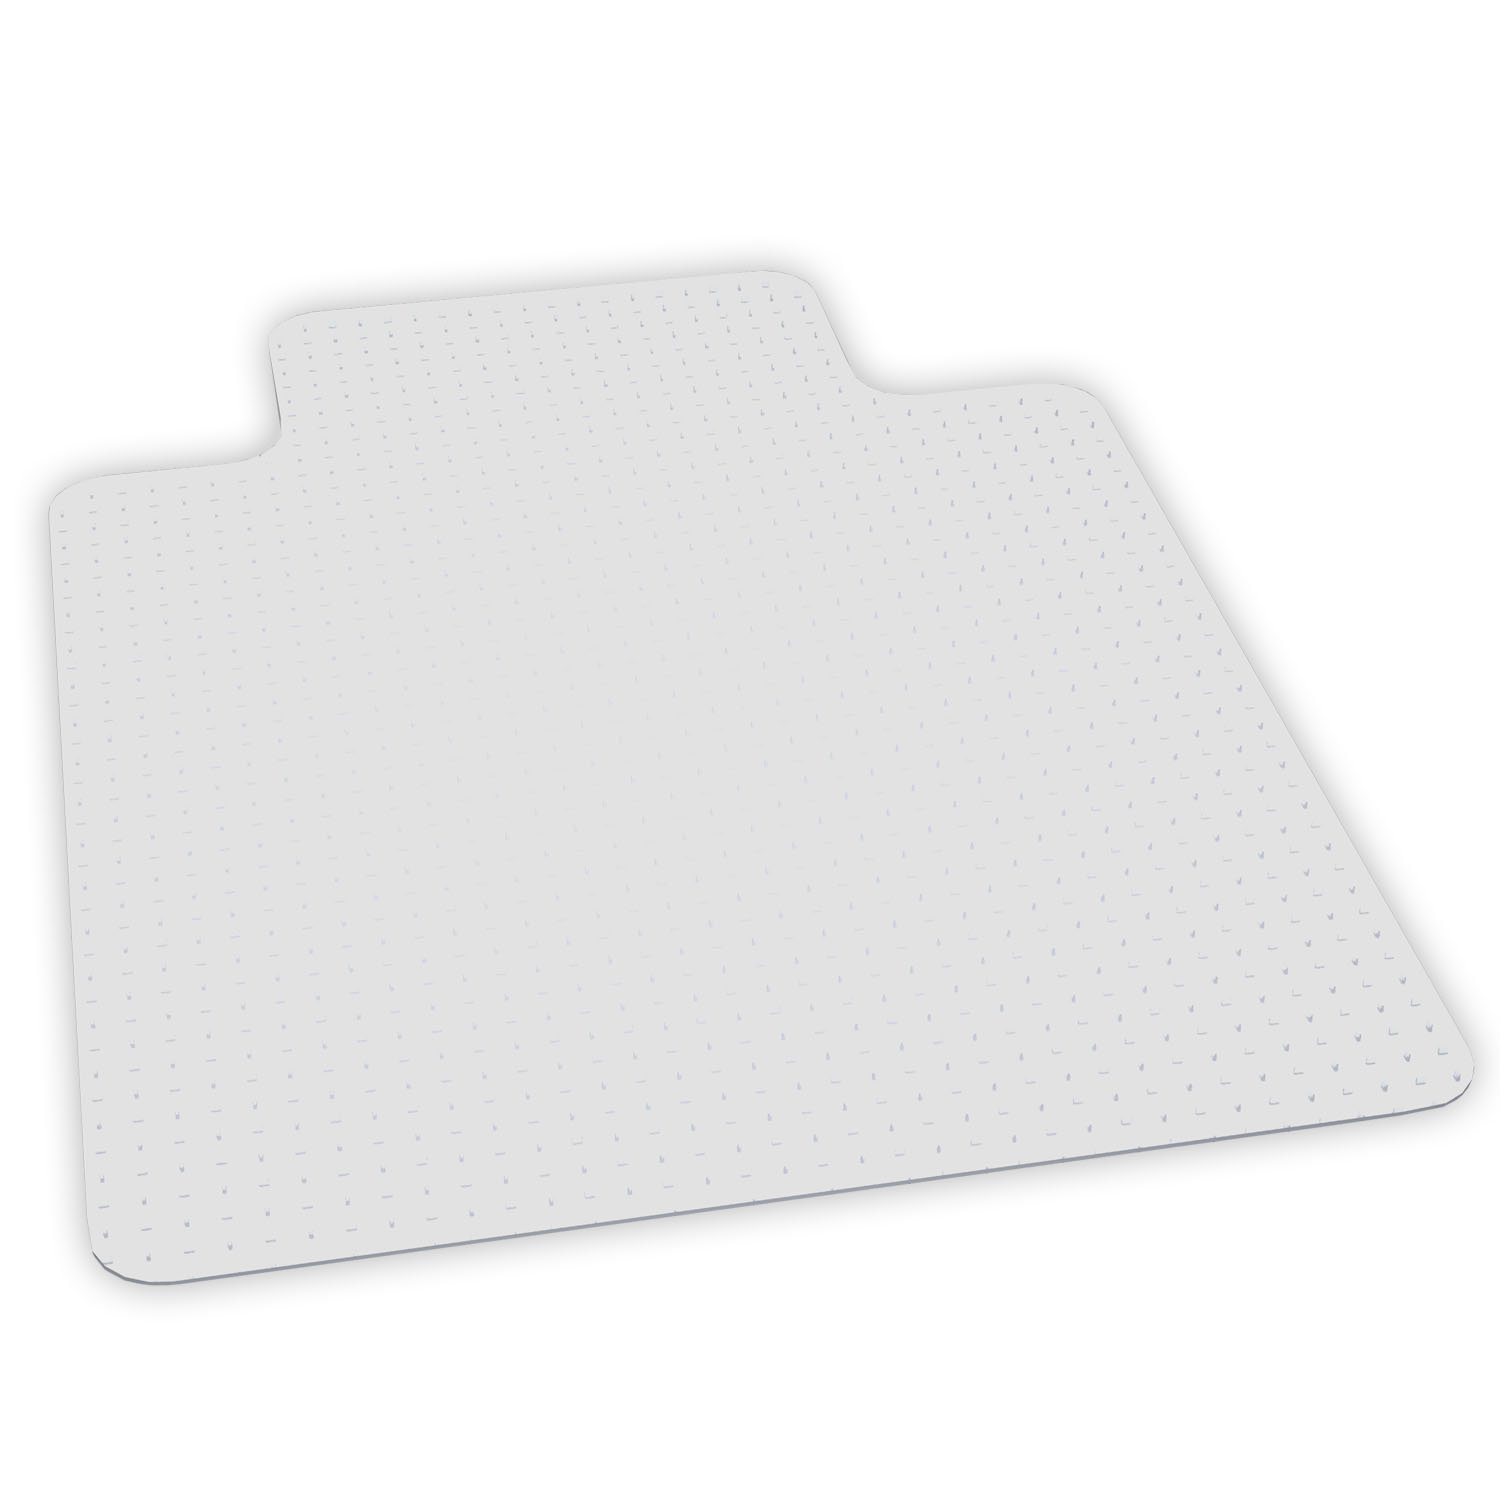 ES Robbins EverLife Anchor Bar Lipped Vinyl Chair Mat for High Pile Carpet, 46 by 60-Inch, Clear